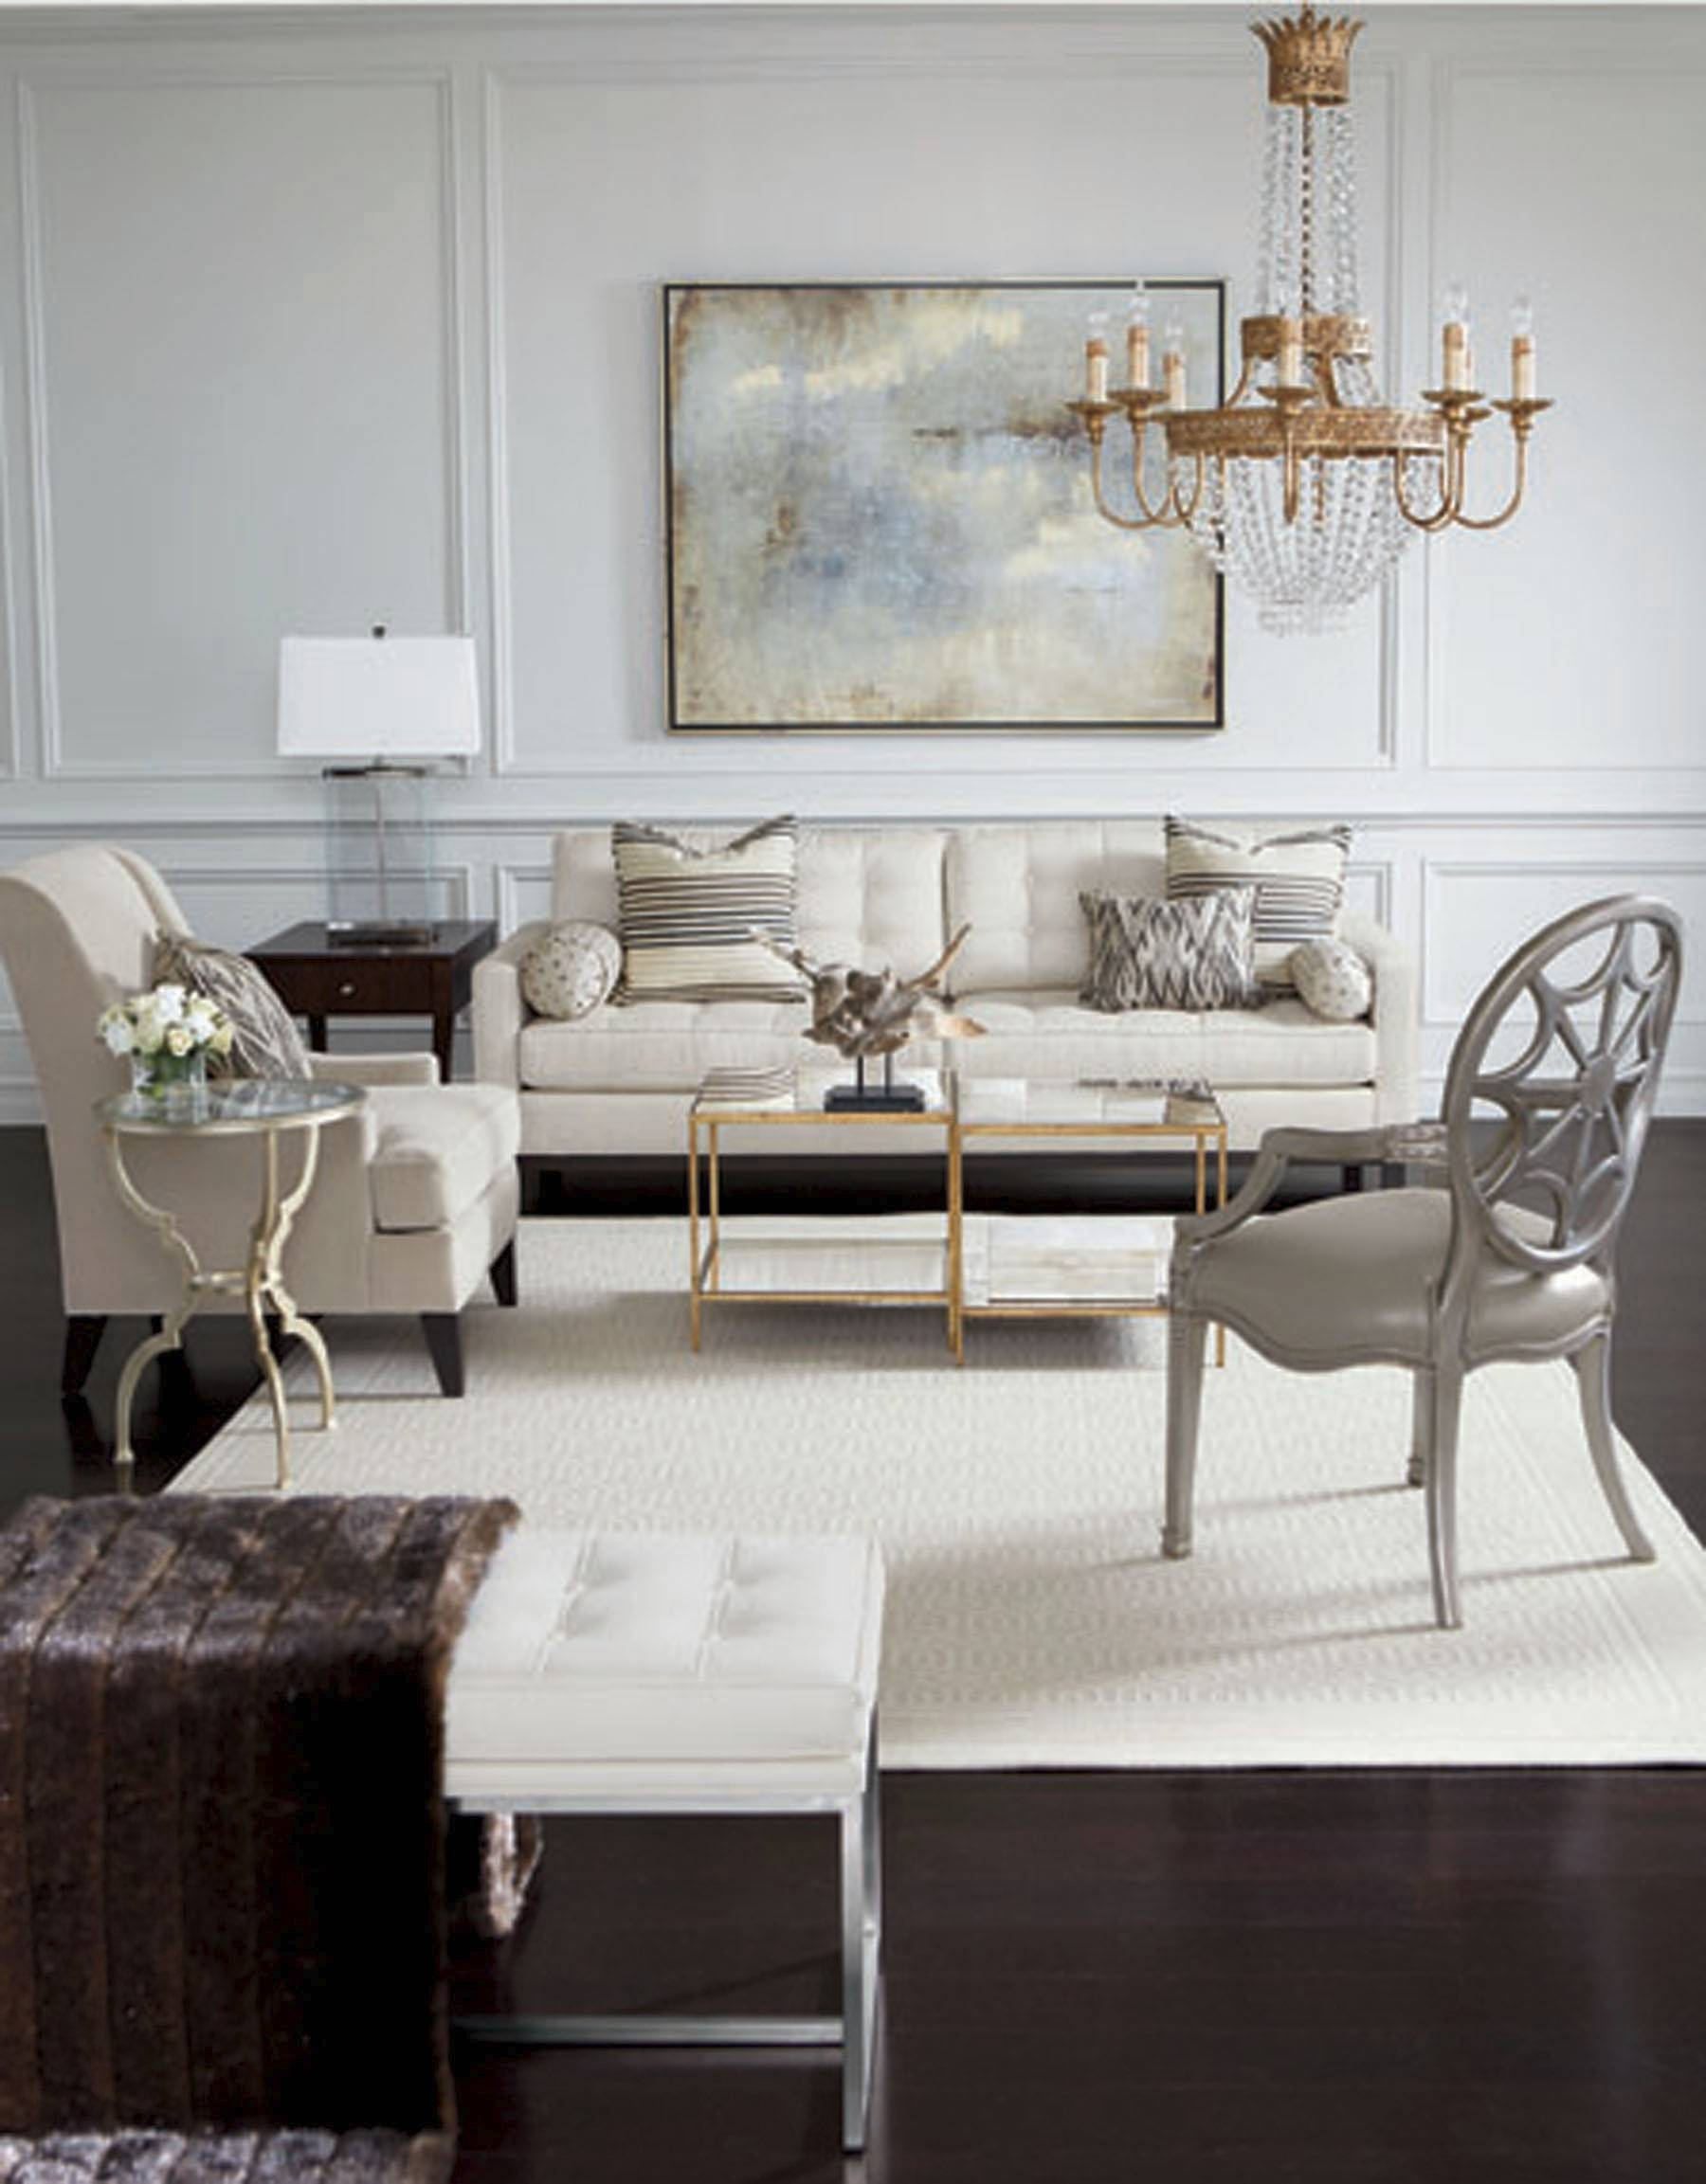 Buy wisely, and white can be the just-right color for a calm, sophisticated living room.